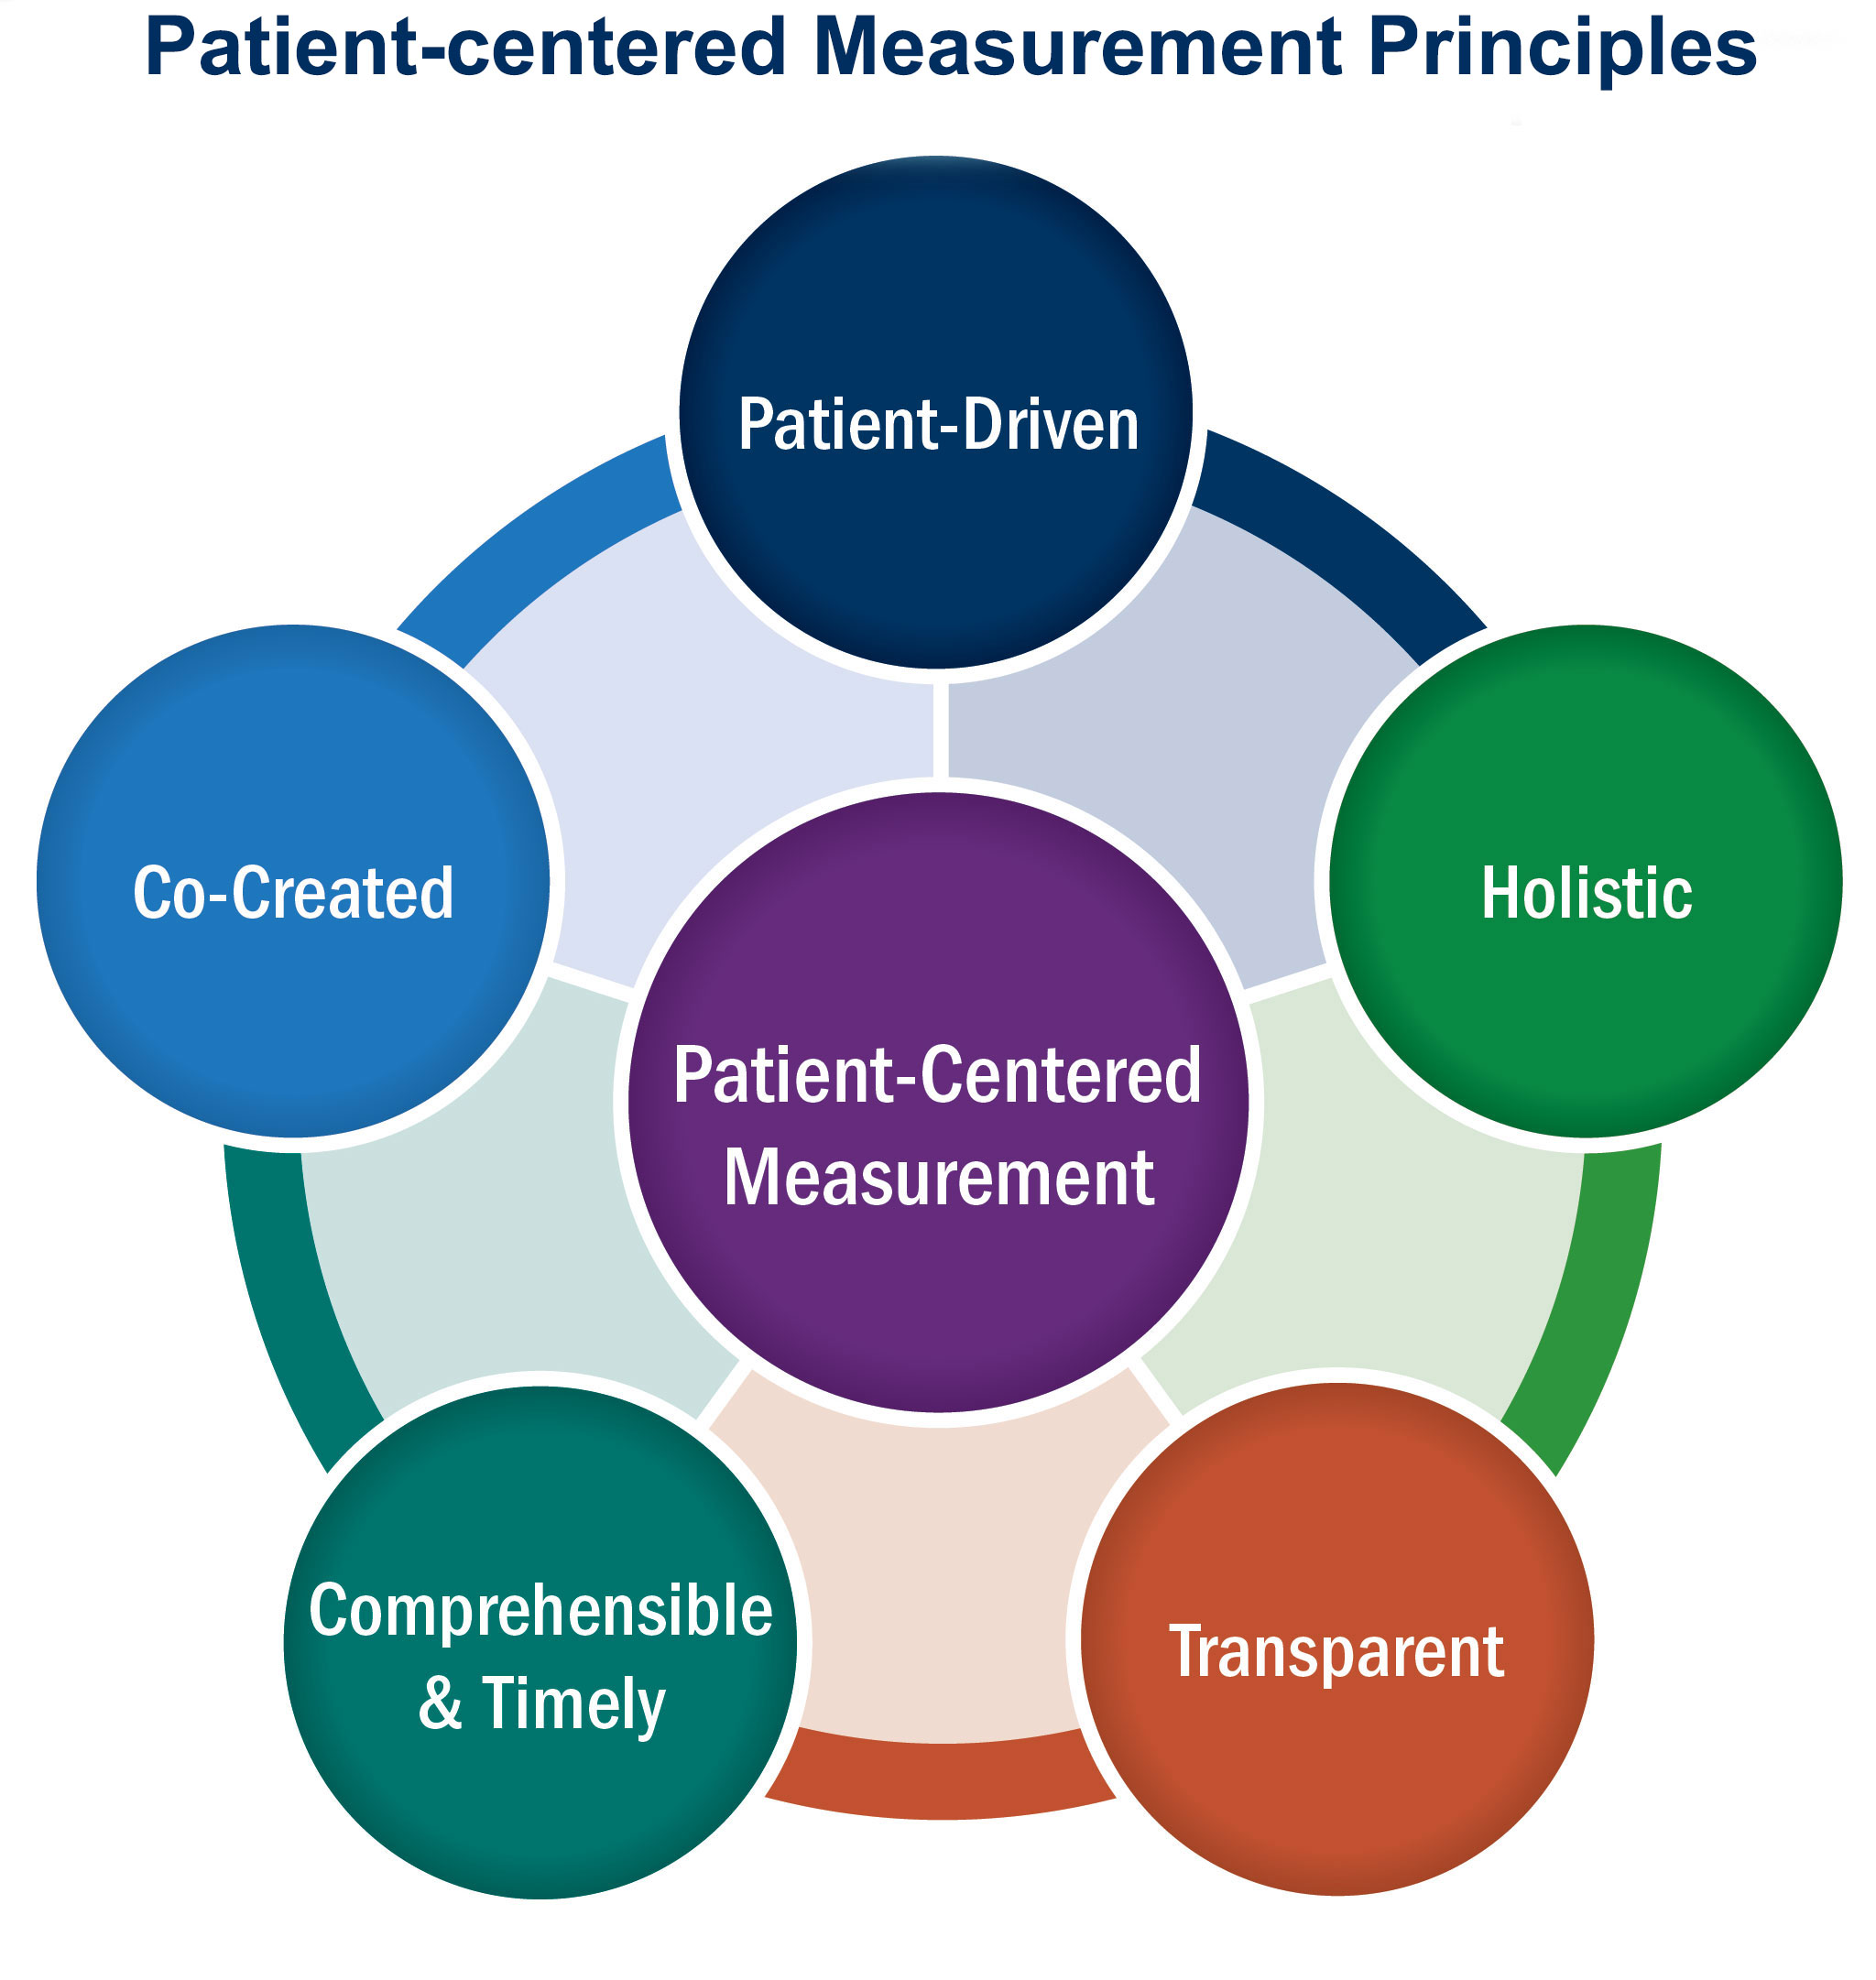 Graphic: Patient-centered measurement